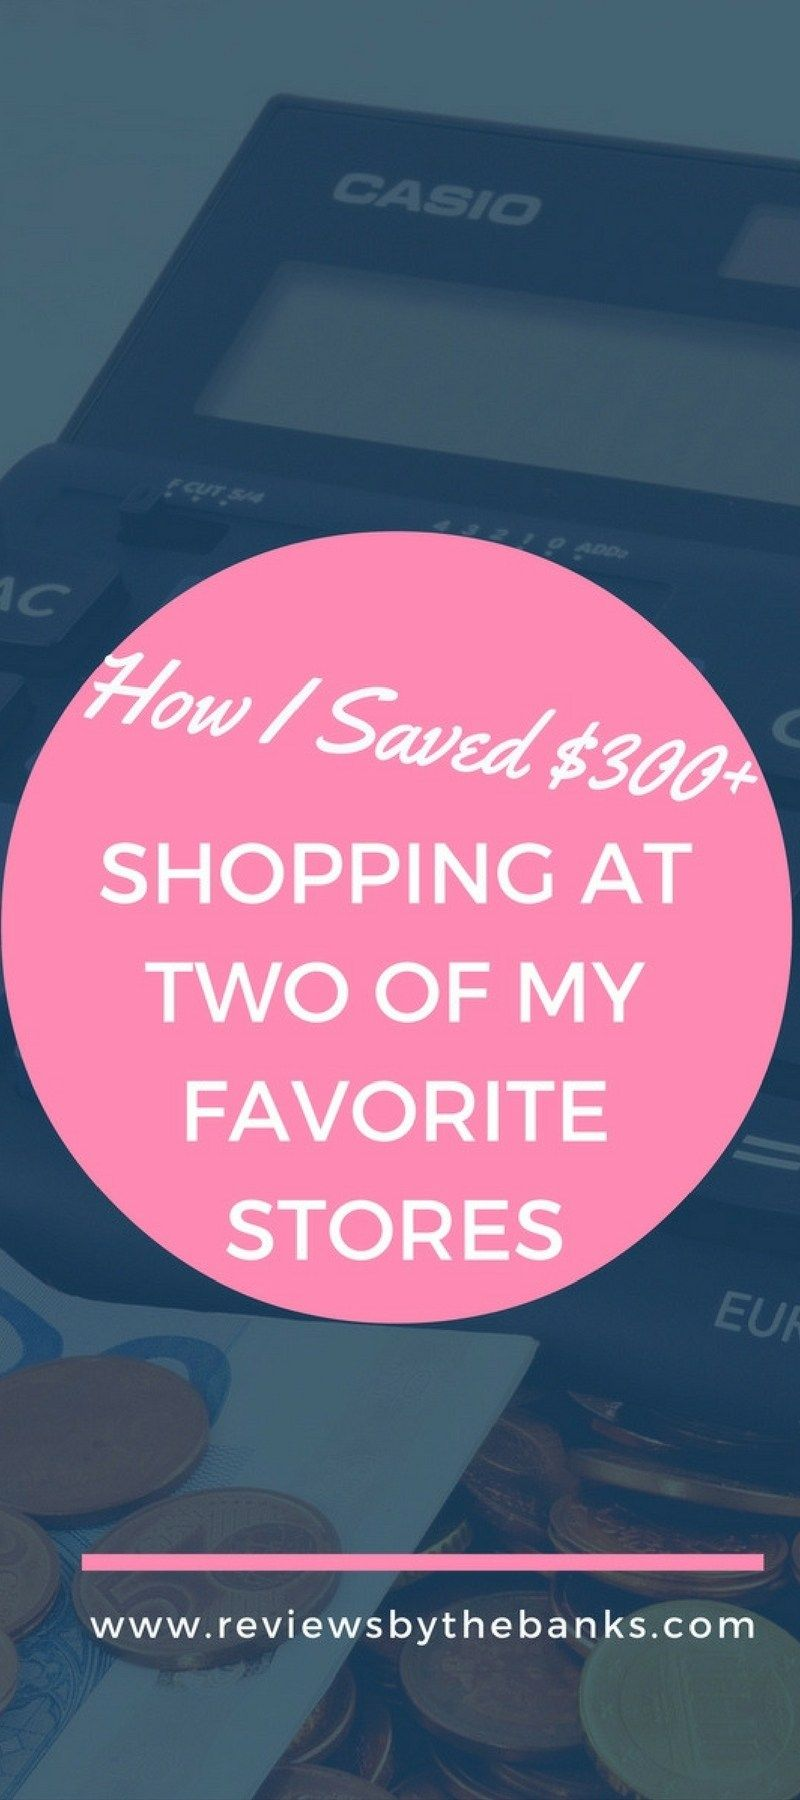 How I saved 300+ shopping at two of my favorite stores